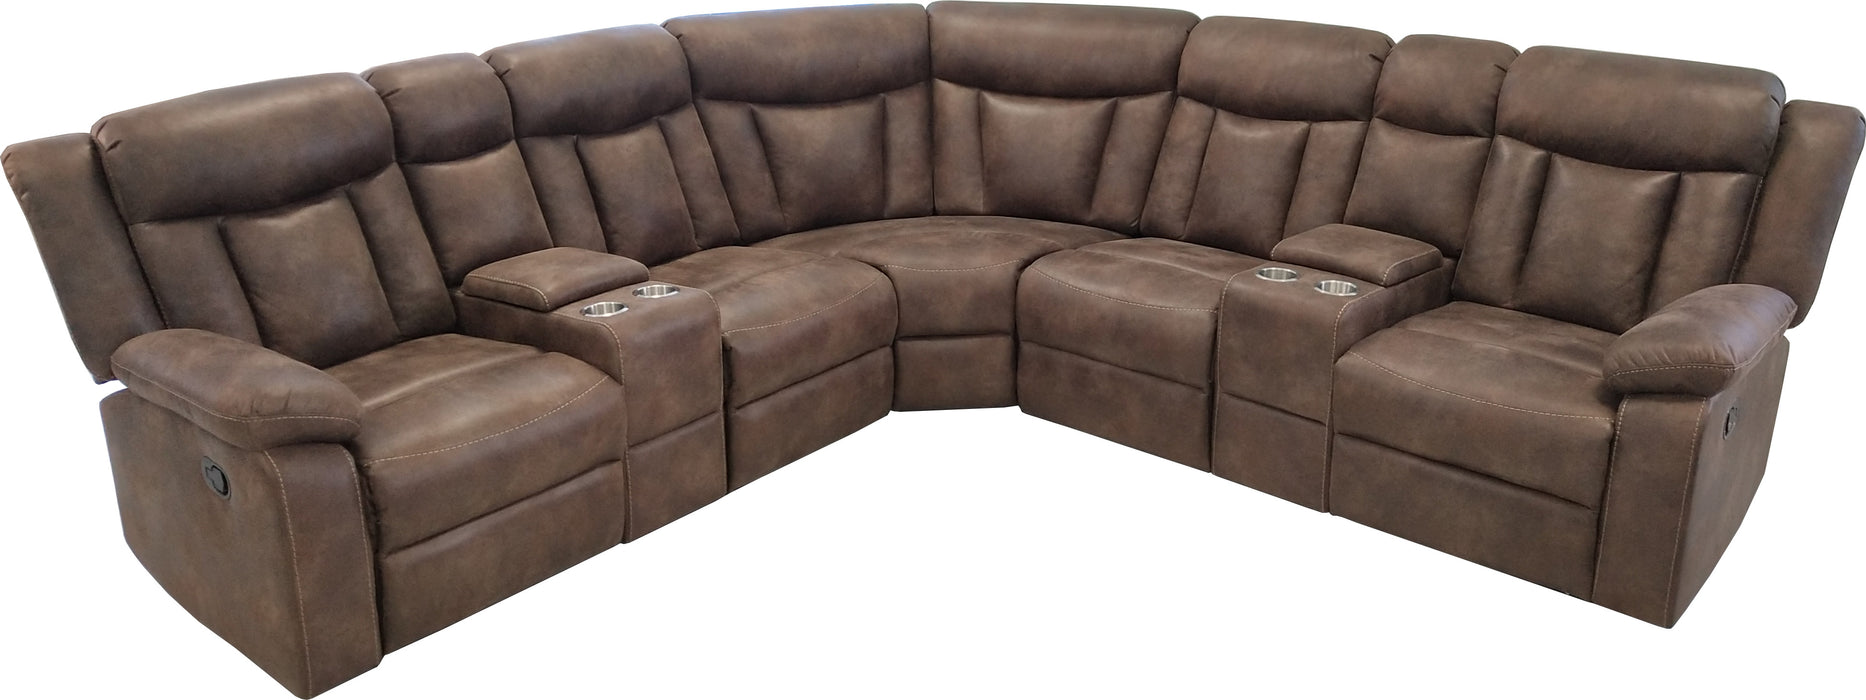 New Classic Furniture | Living Recliner Sectional in Washington D.C, Maryland 6150